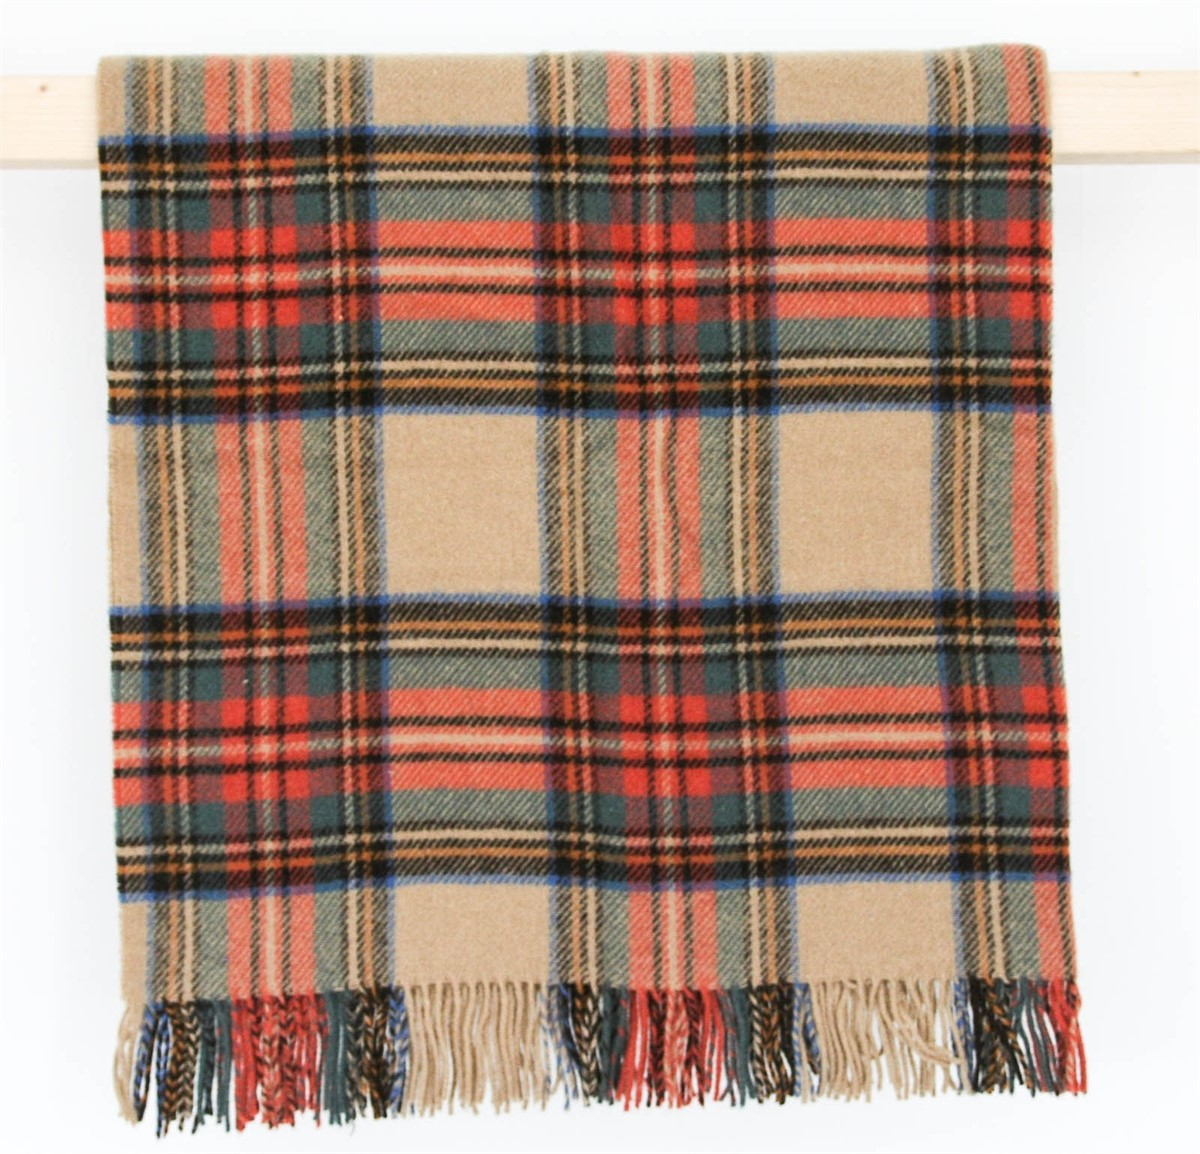 Wool Blanket Online British Made Gifts Antique Dress